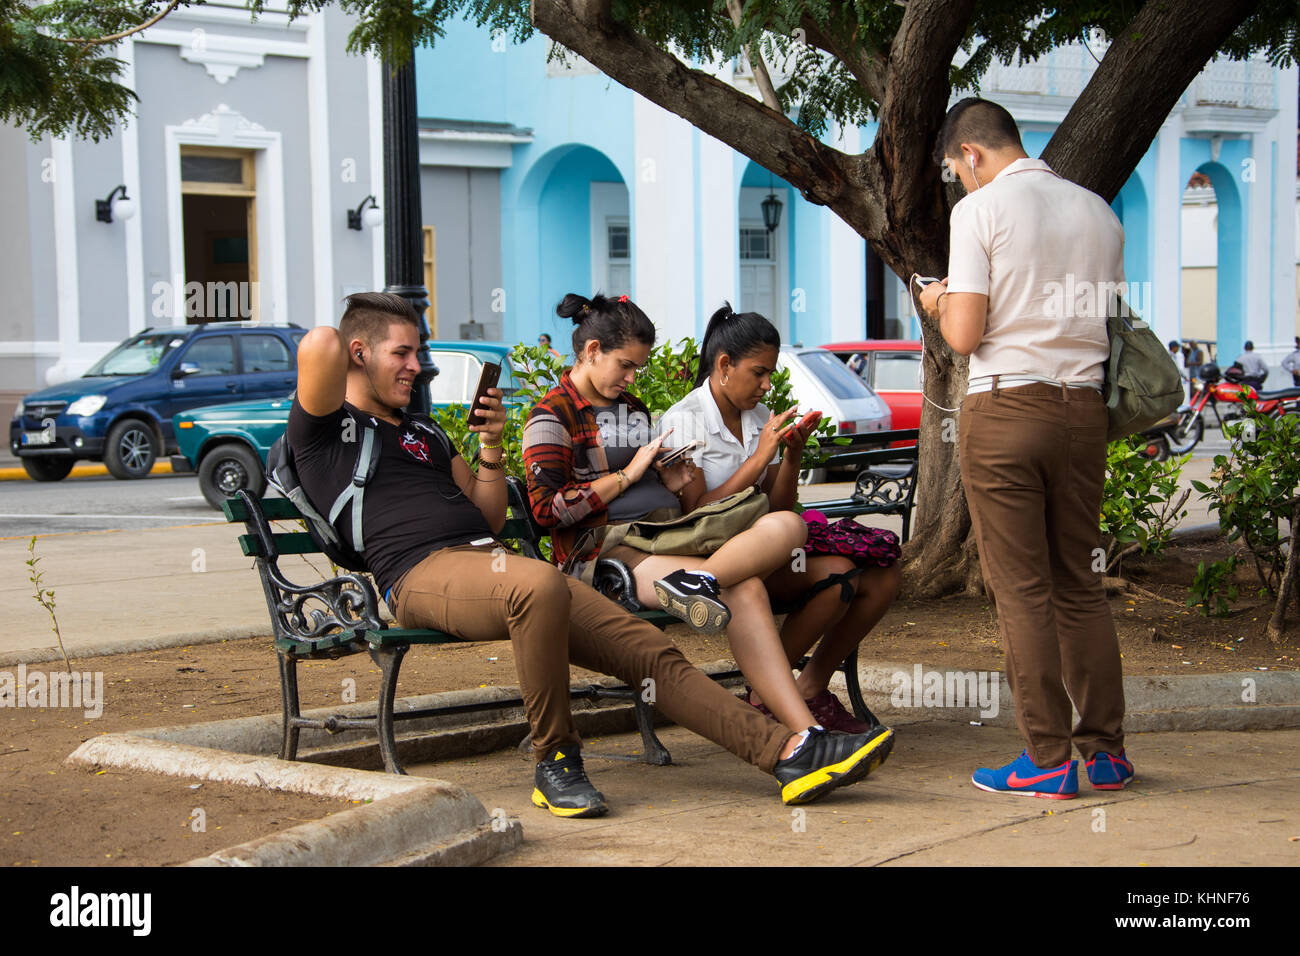 En utilisant l'internet wifi à Cienfuegos, Cuba Photo Stock